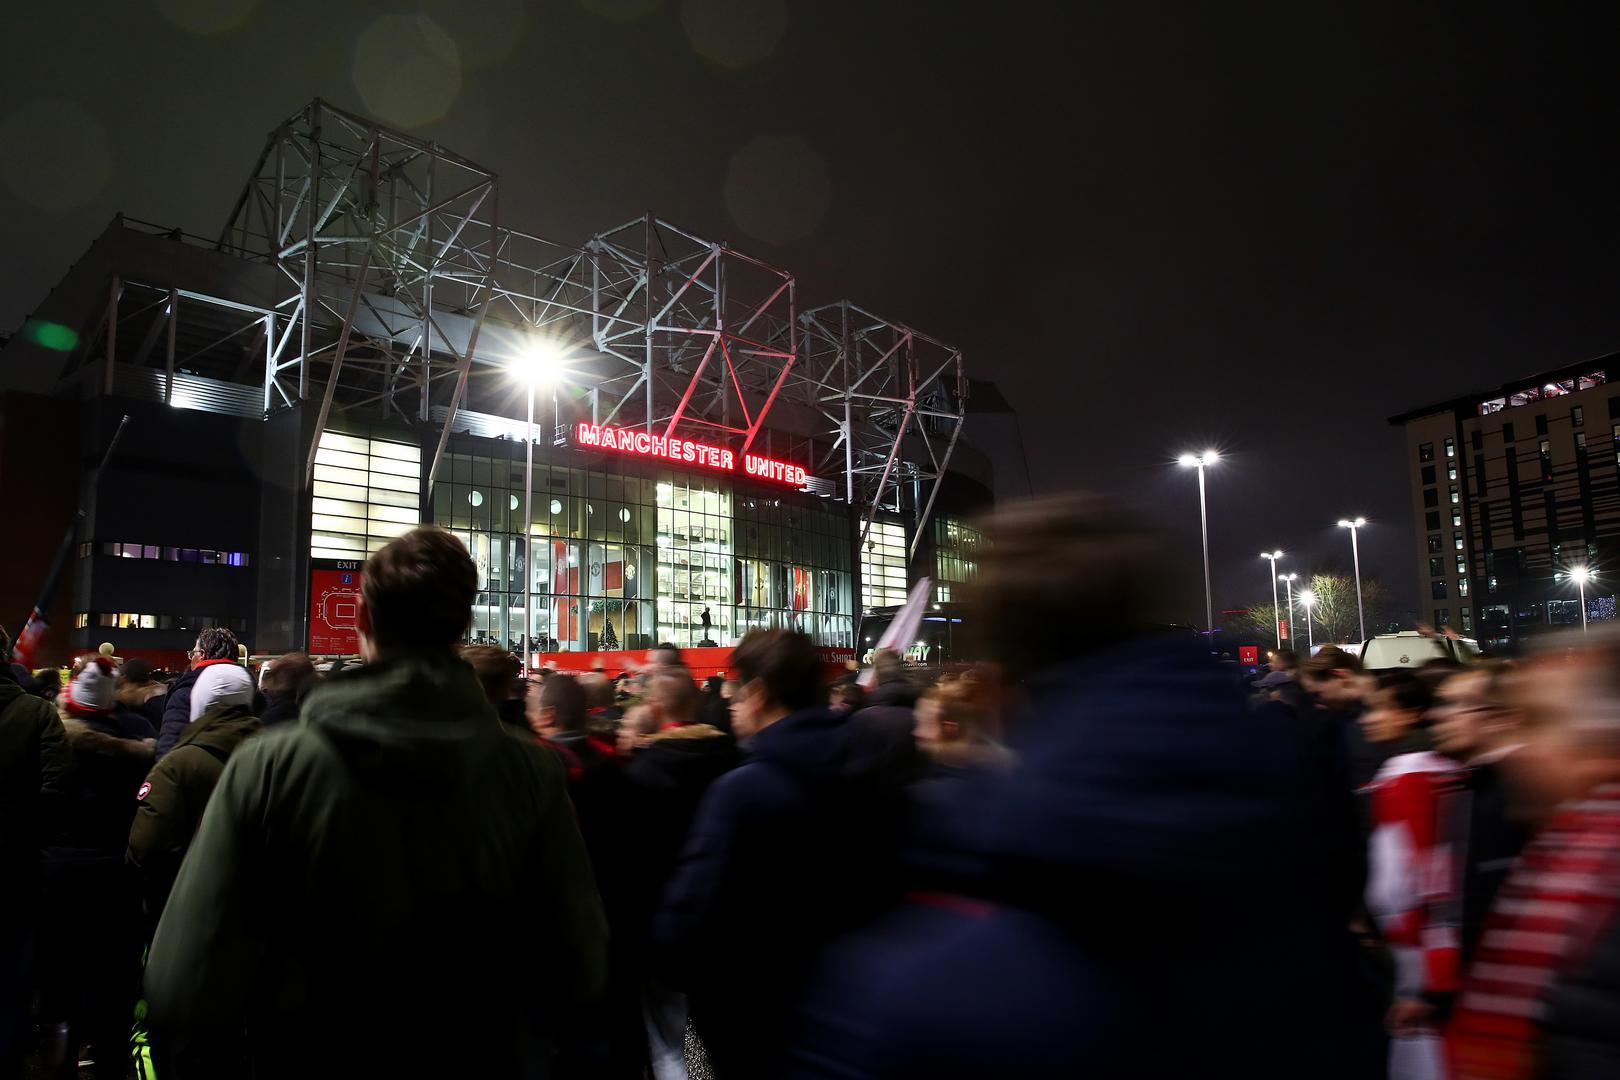 Manchester United fans arrive outside the East Stand of Old Trafford on a match night